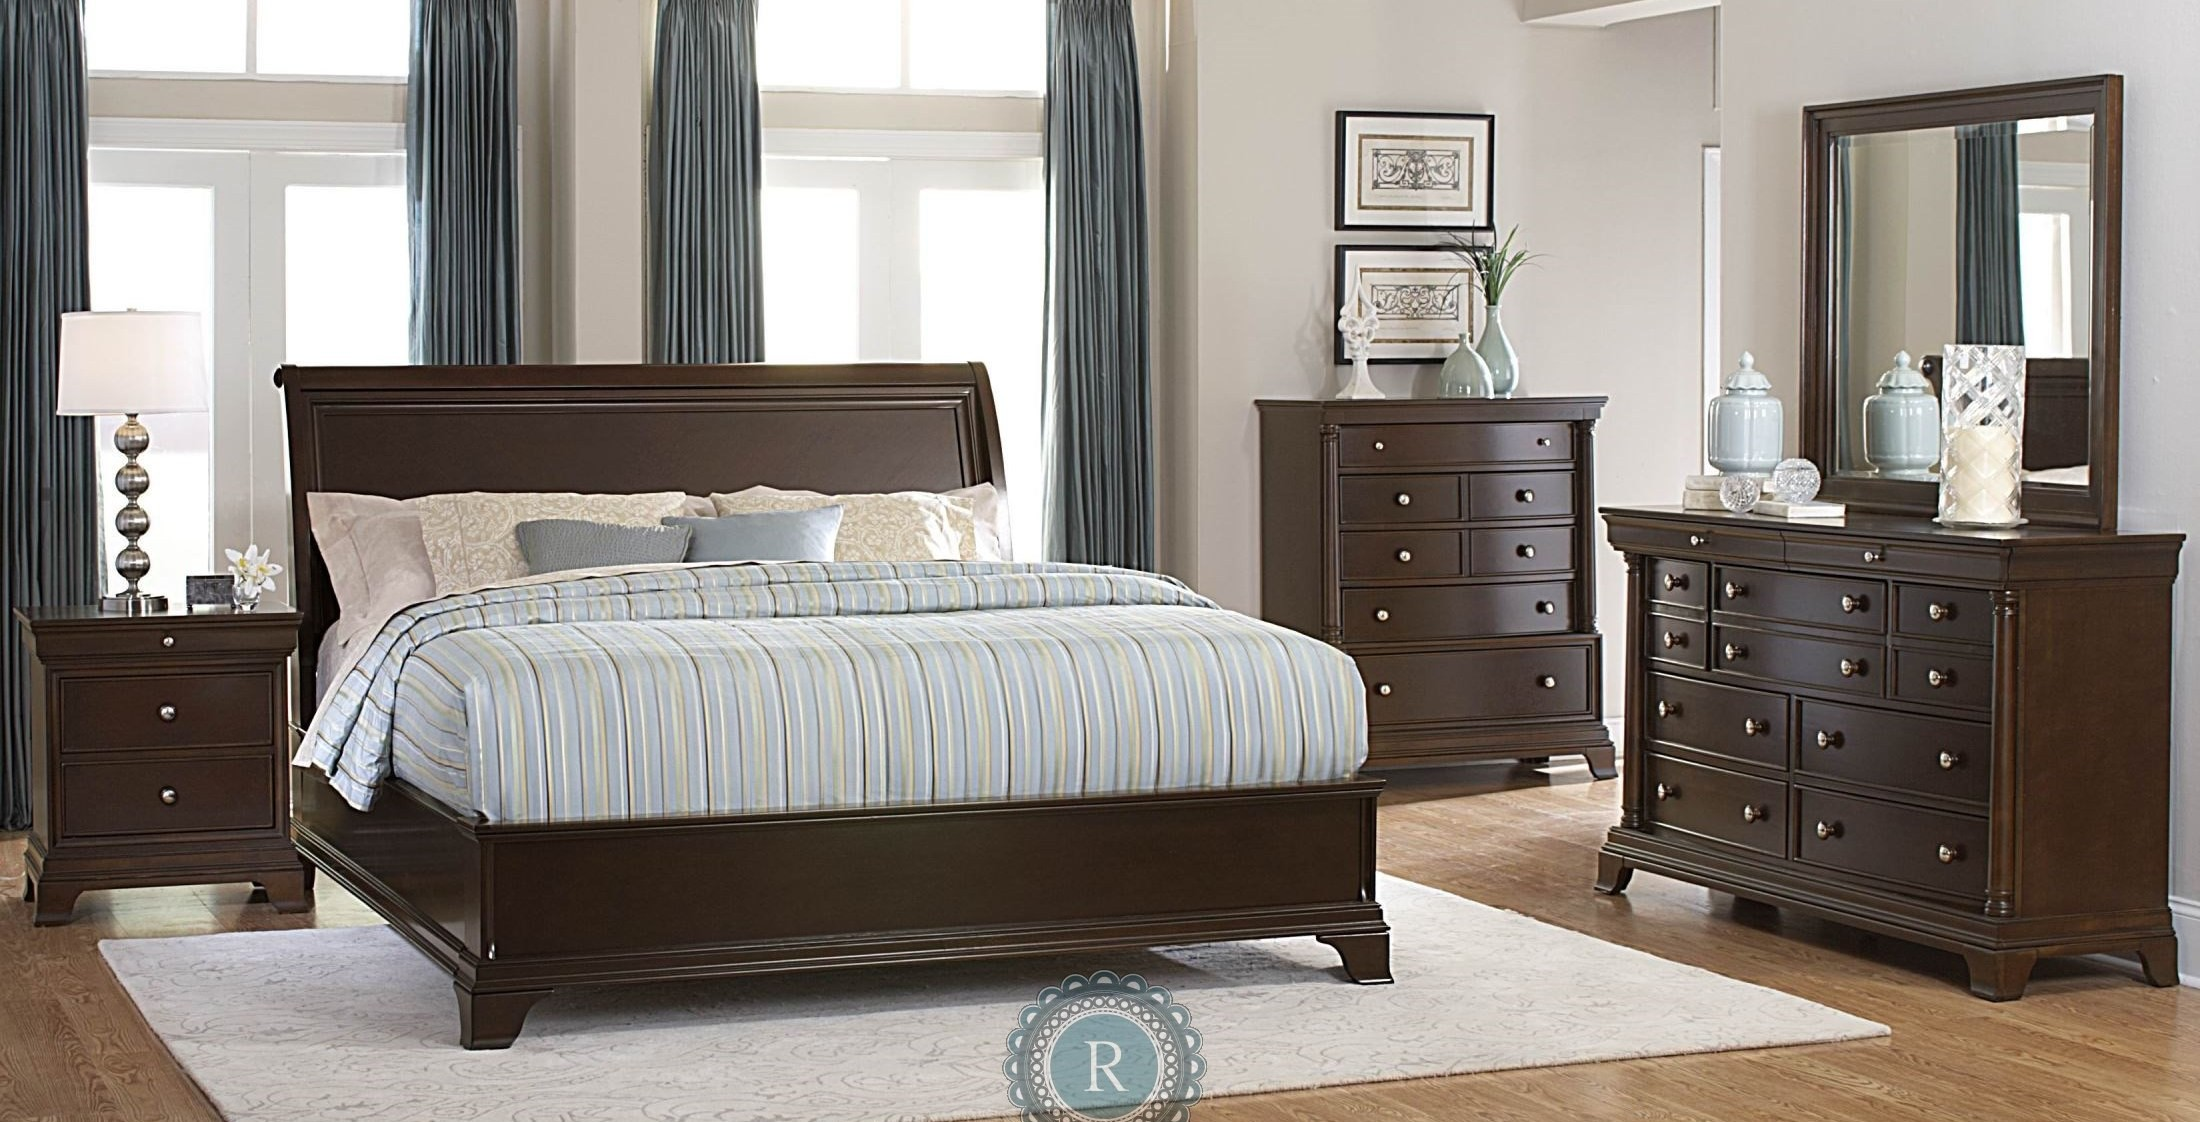 Inglewood Low Profile Bedroom Set From Homelegance 1402lp Coleman Furniture